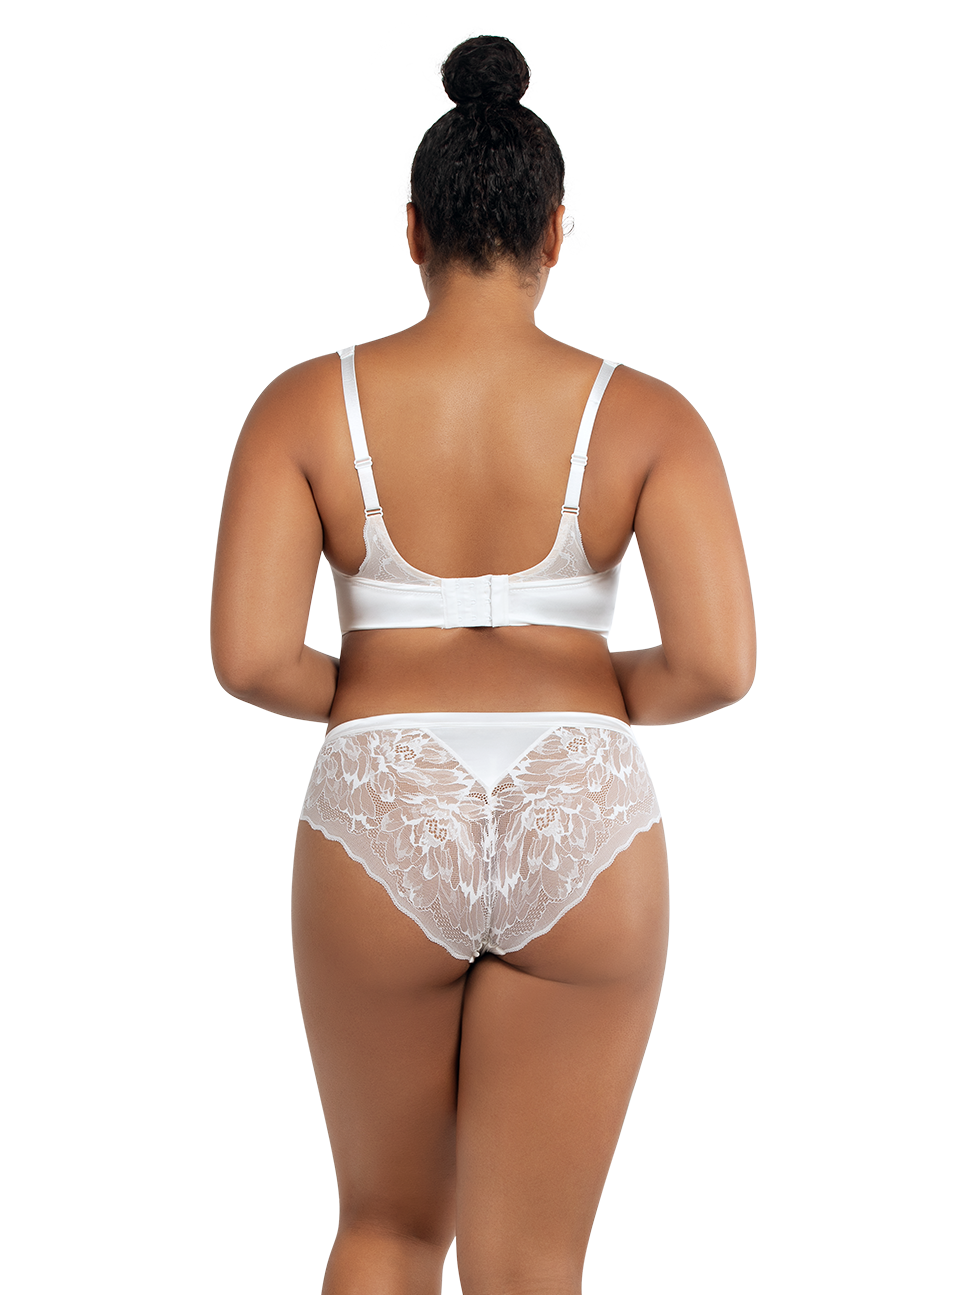 PARFAIT Vanessa UnlinedWireBraP5792 HipsterP5793 PearlWhite Back - Vanessa Hipster Pearl White P5793